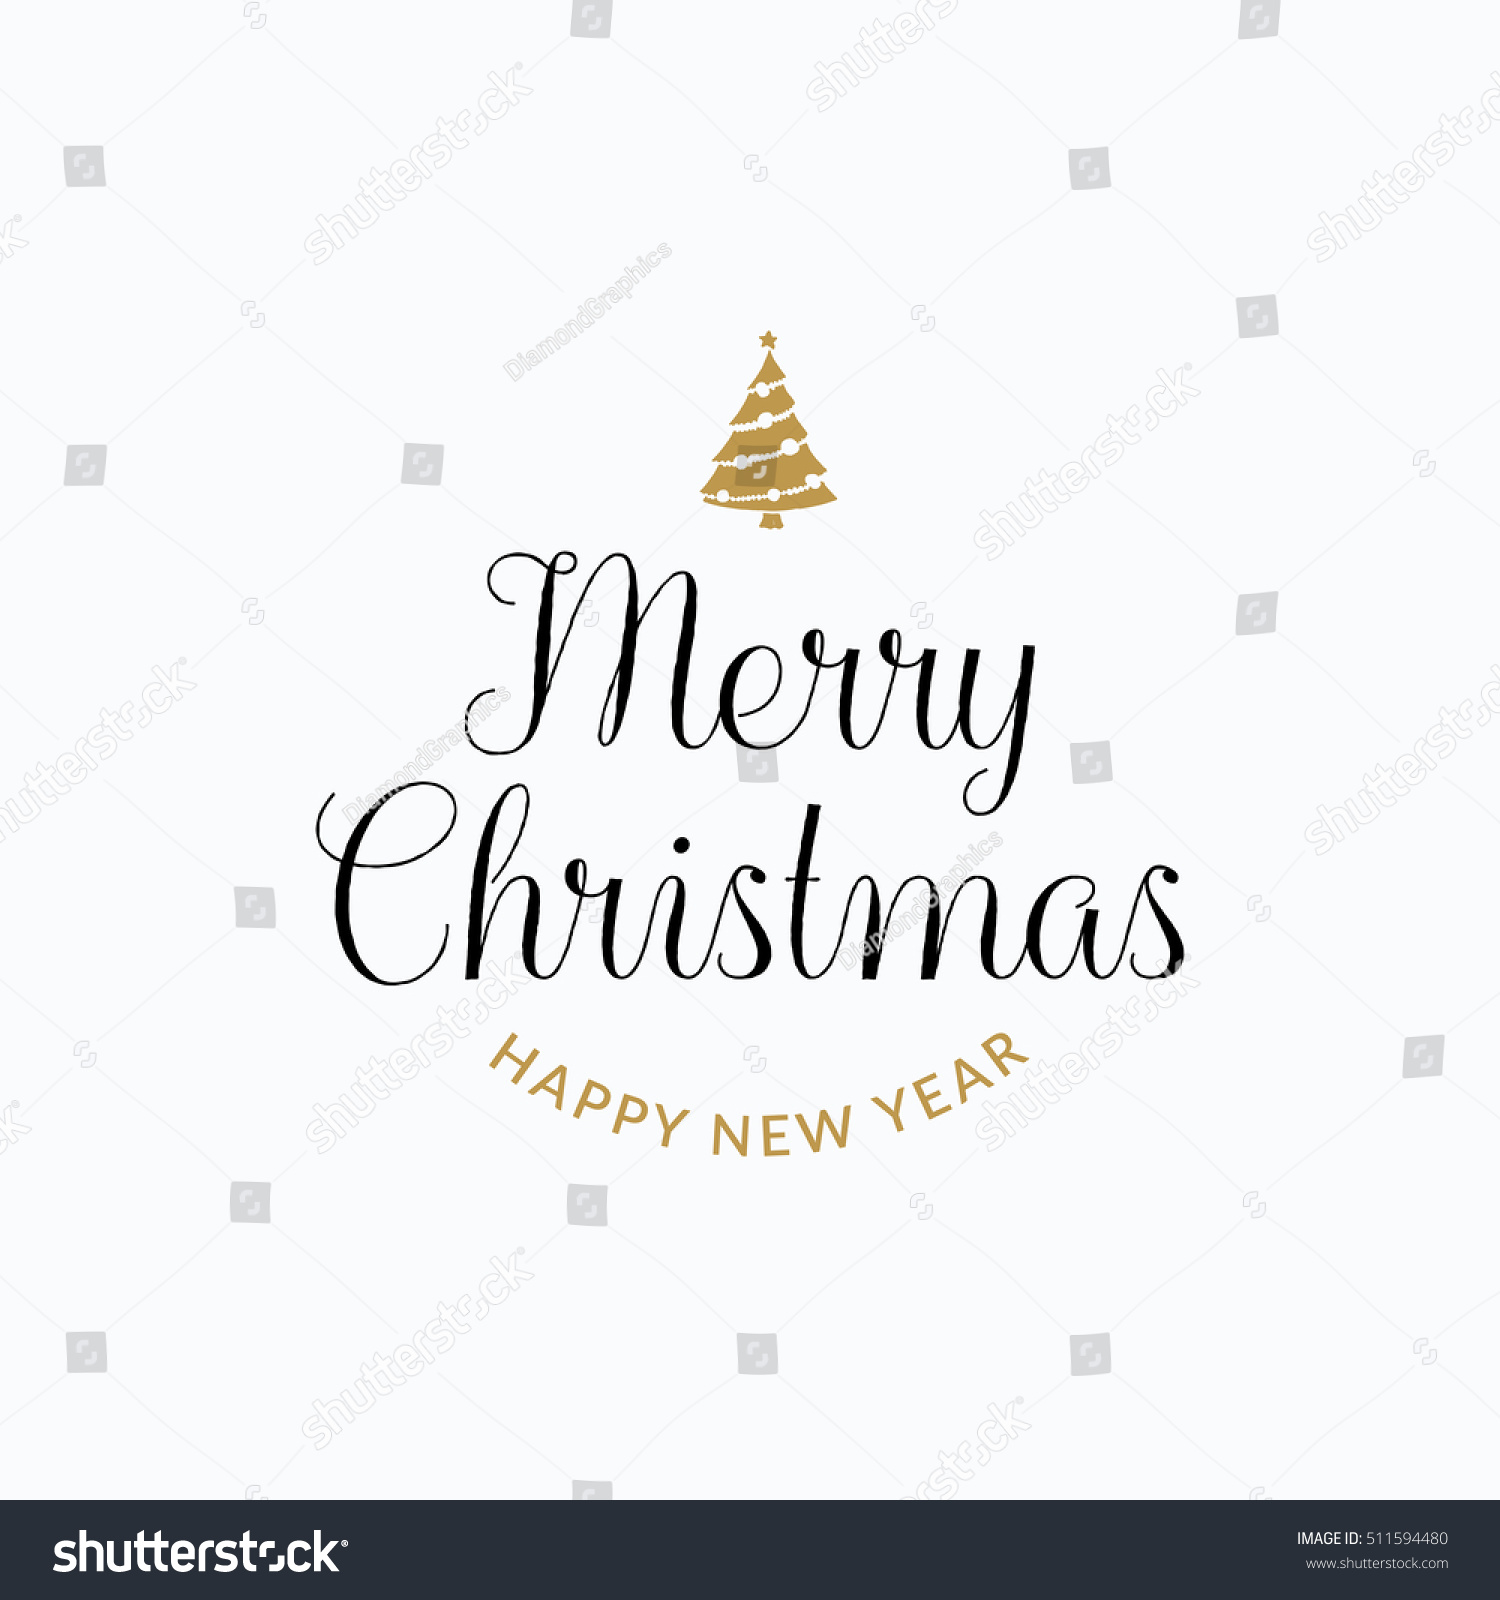 Merry christmas lettering typography handwriting text stock vector merry christmas lettering typography handwriting text design with winter holidays gold icons symbols biocorpaavc Images